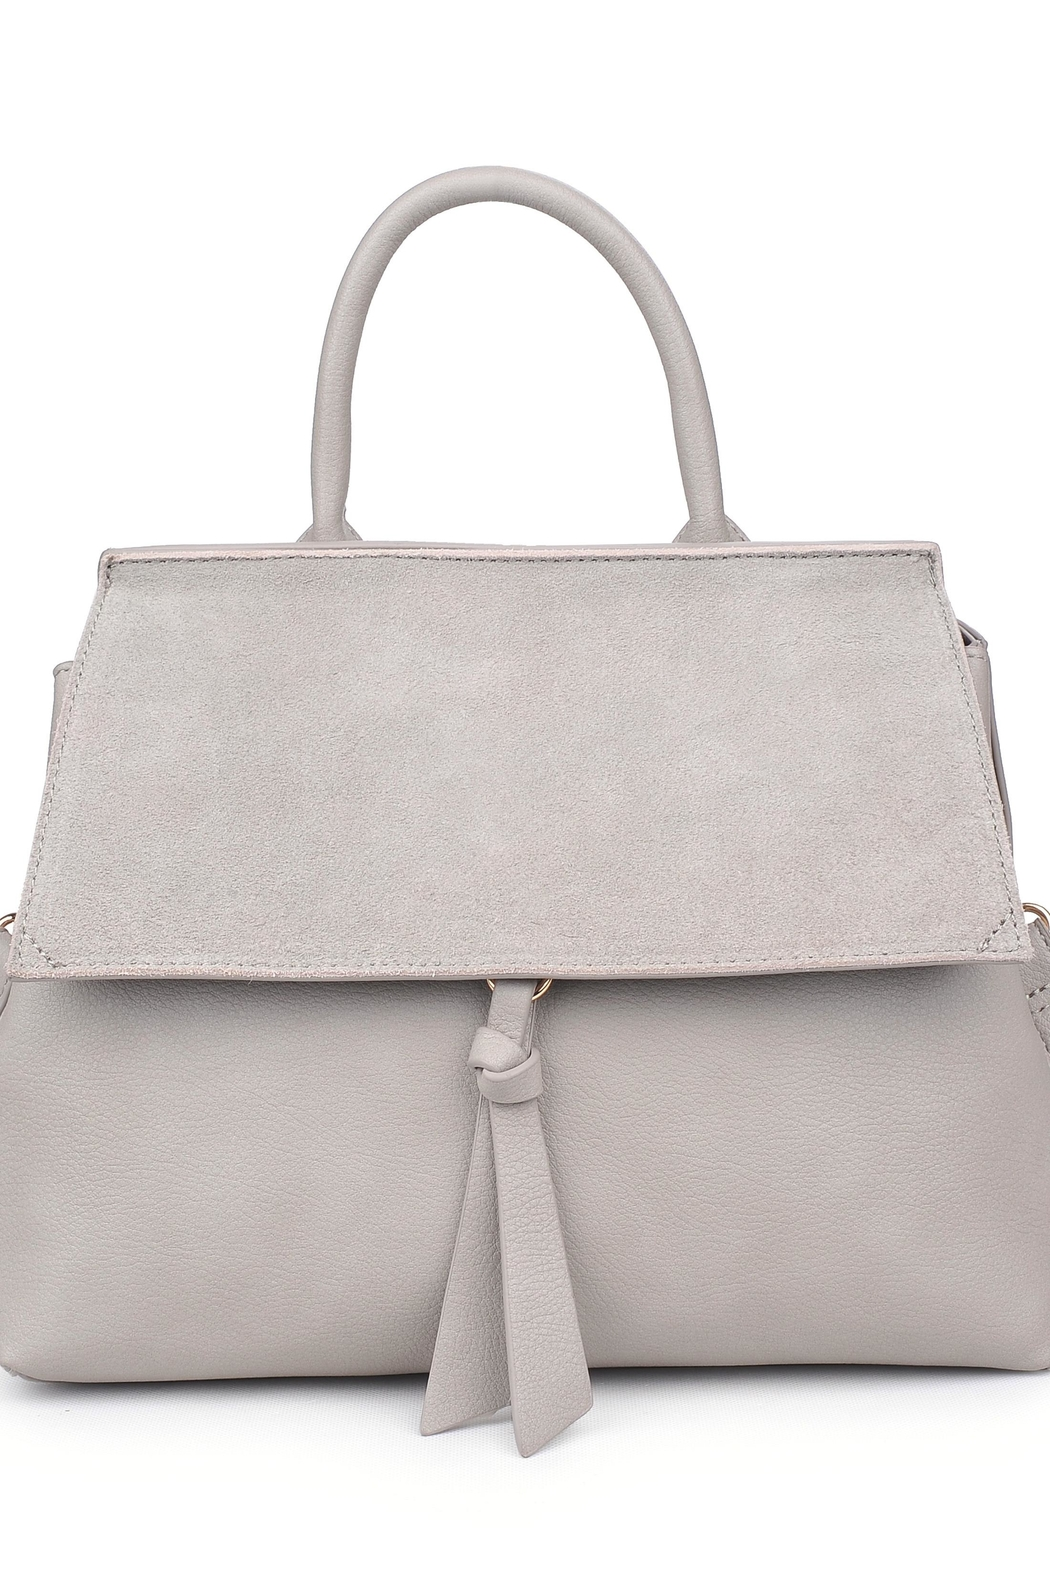 Moda Luxe Clare Bag - Front Cropped Image